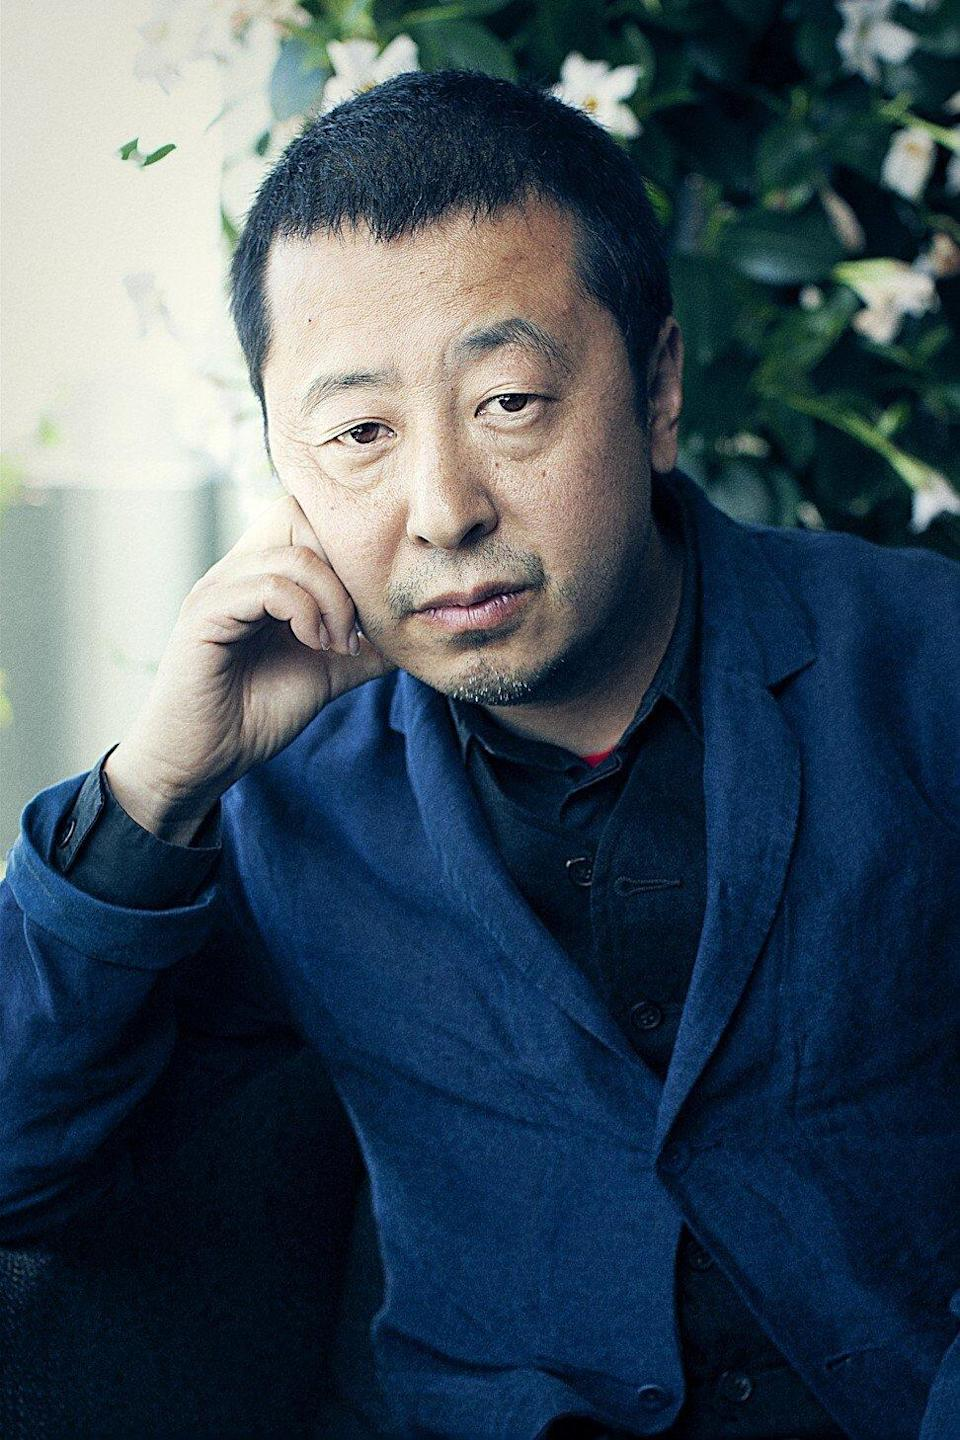 Director Jia Zhangke thinks a required licence would smother the creative process for films. Photo: Getty Images